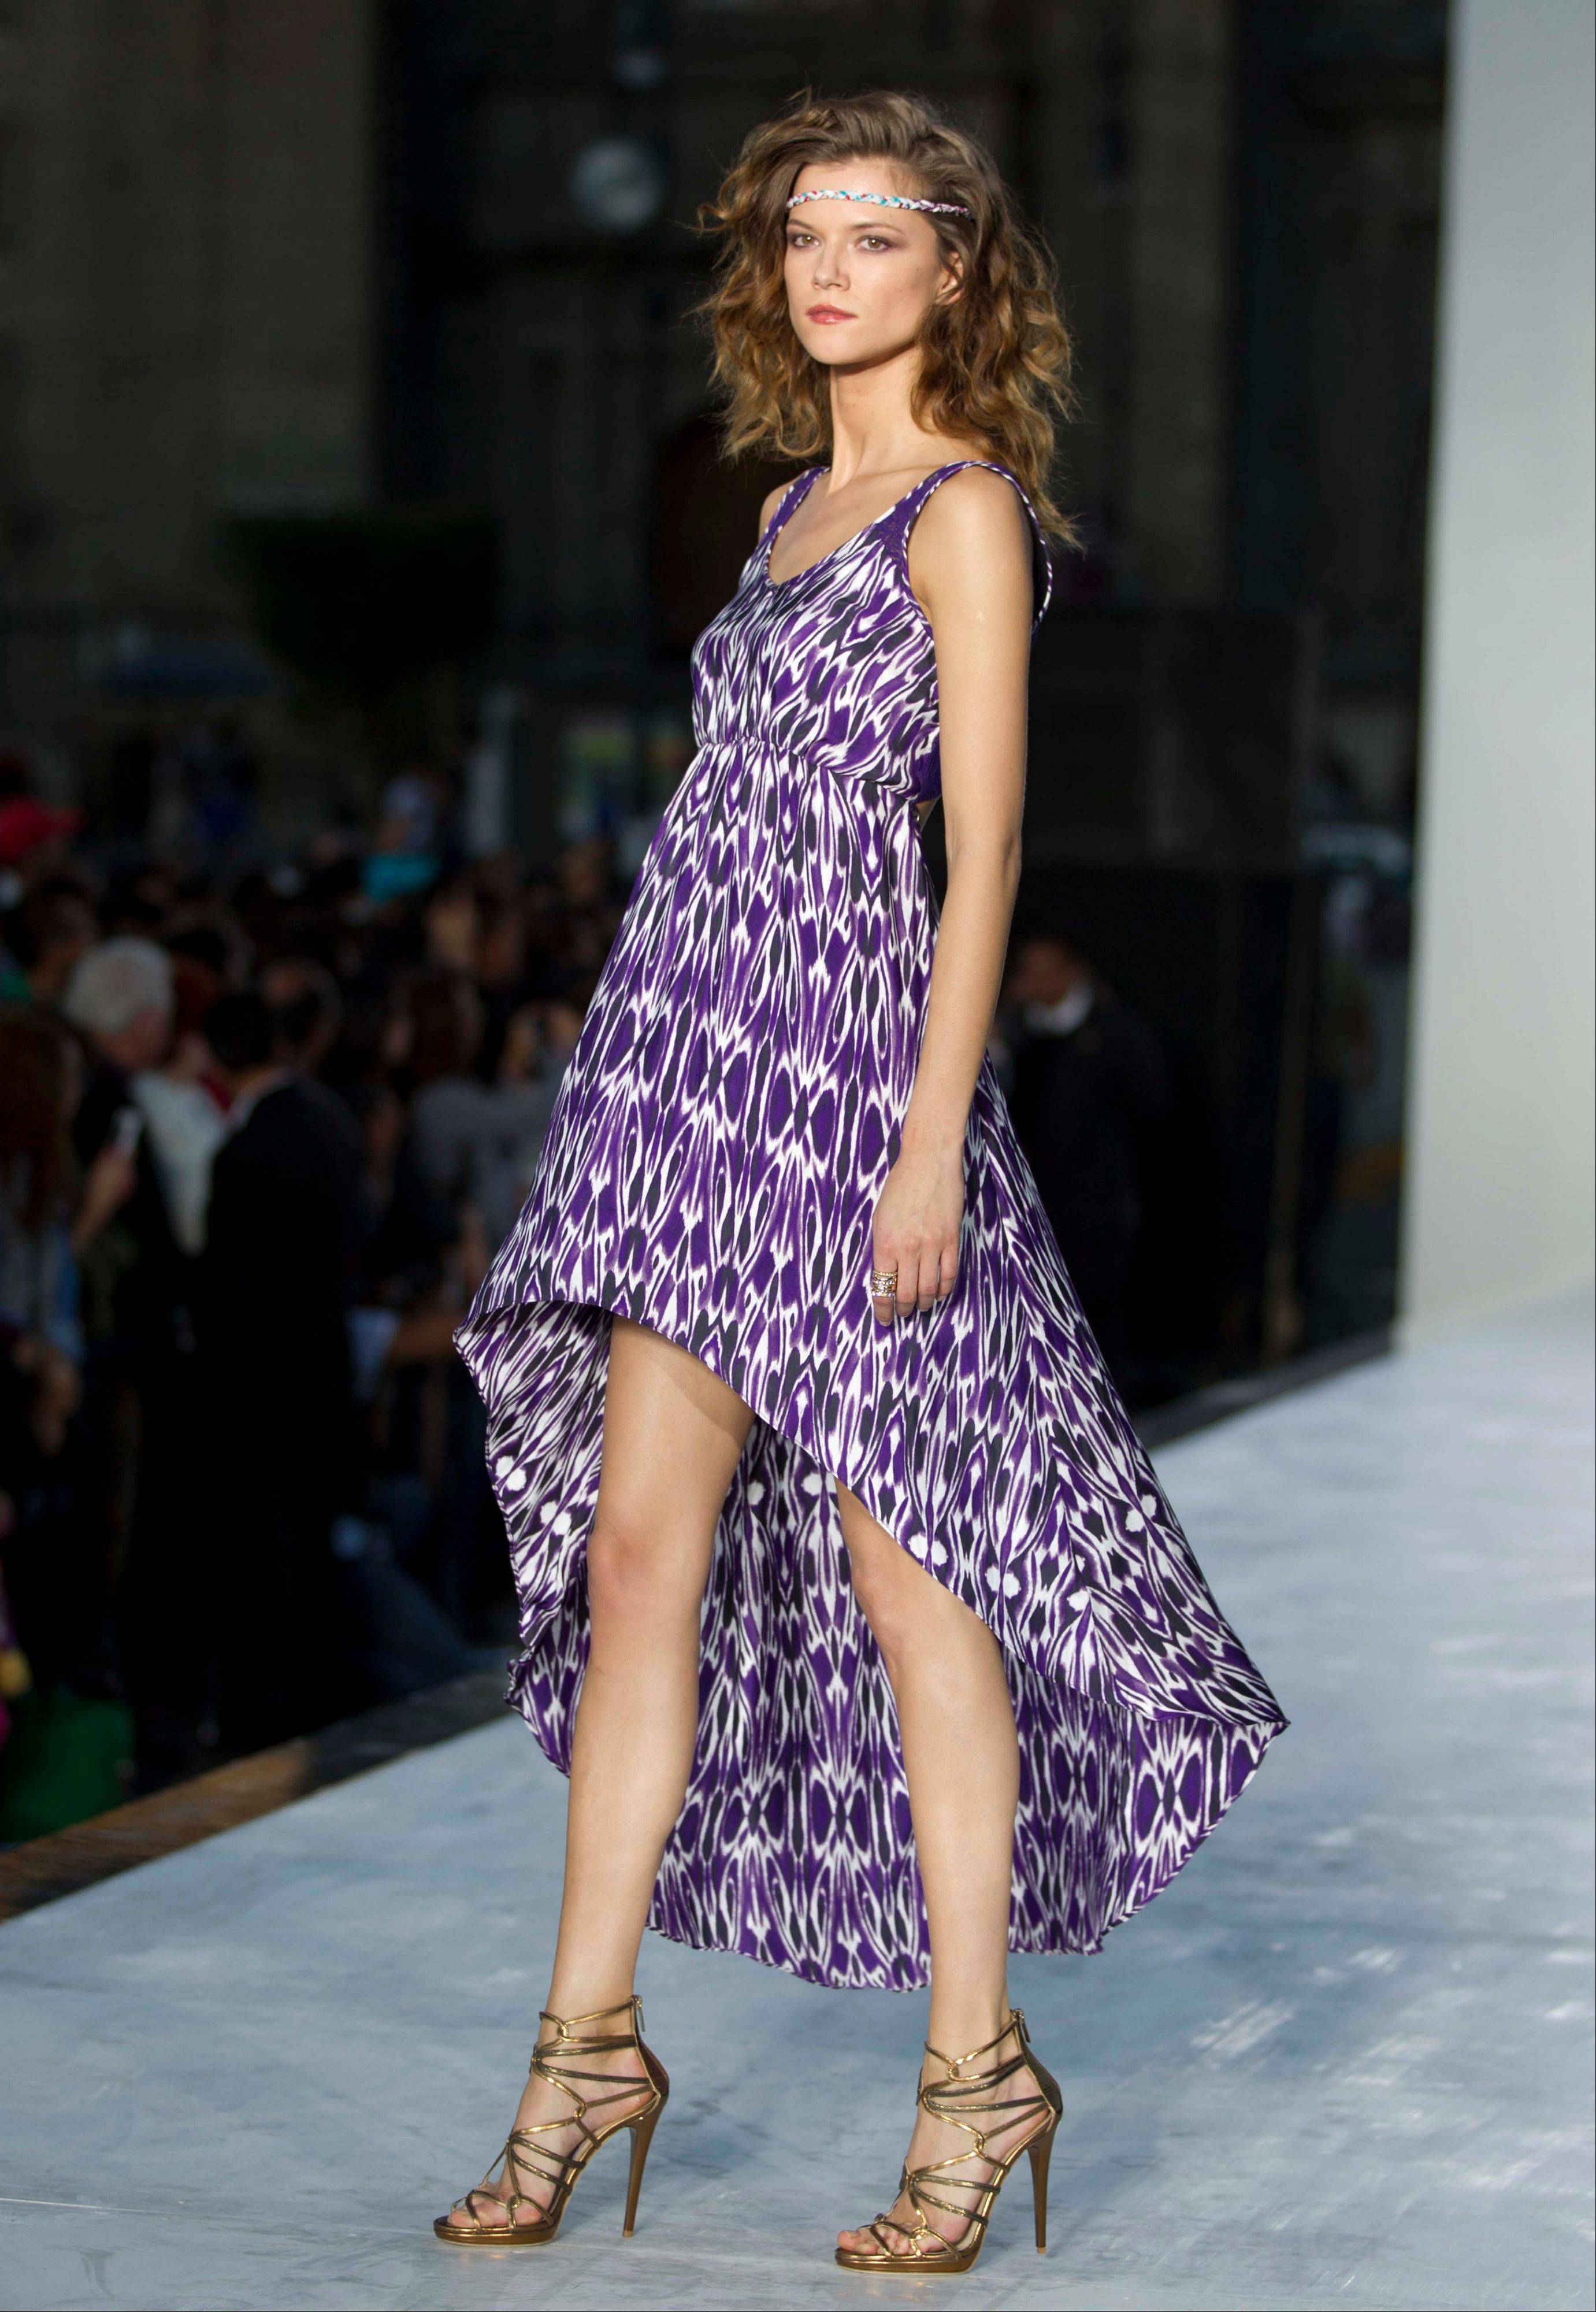 Associated Press A model walks in Mexico City on the final day of the Mercedes Benz Fashion Week.